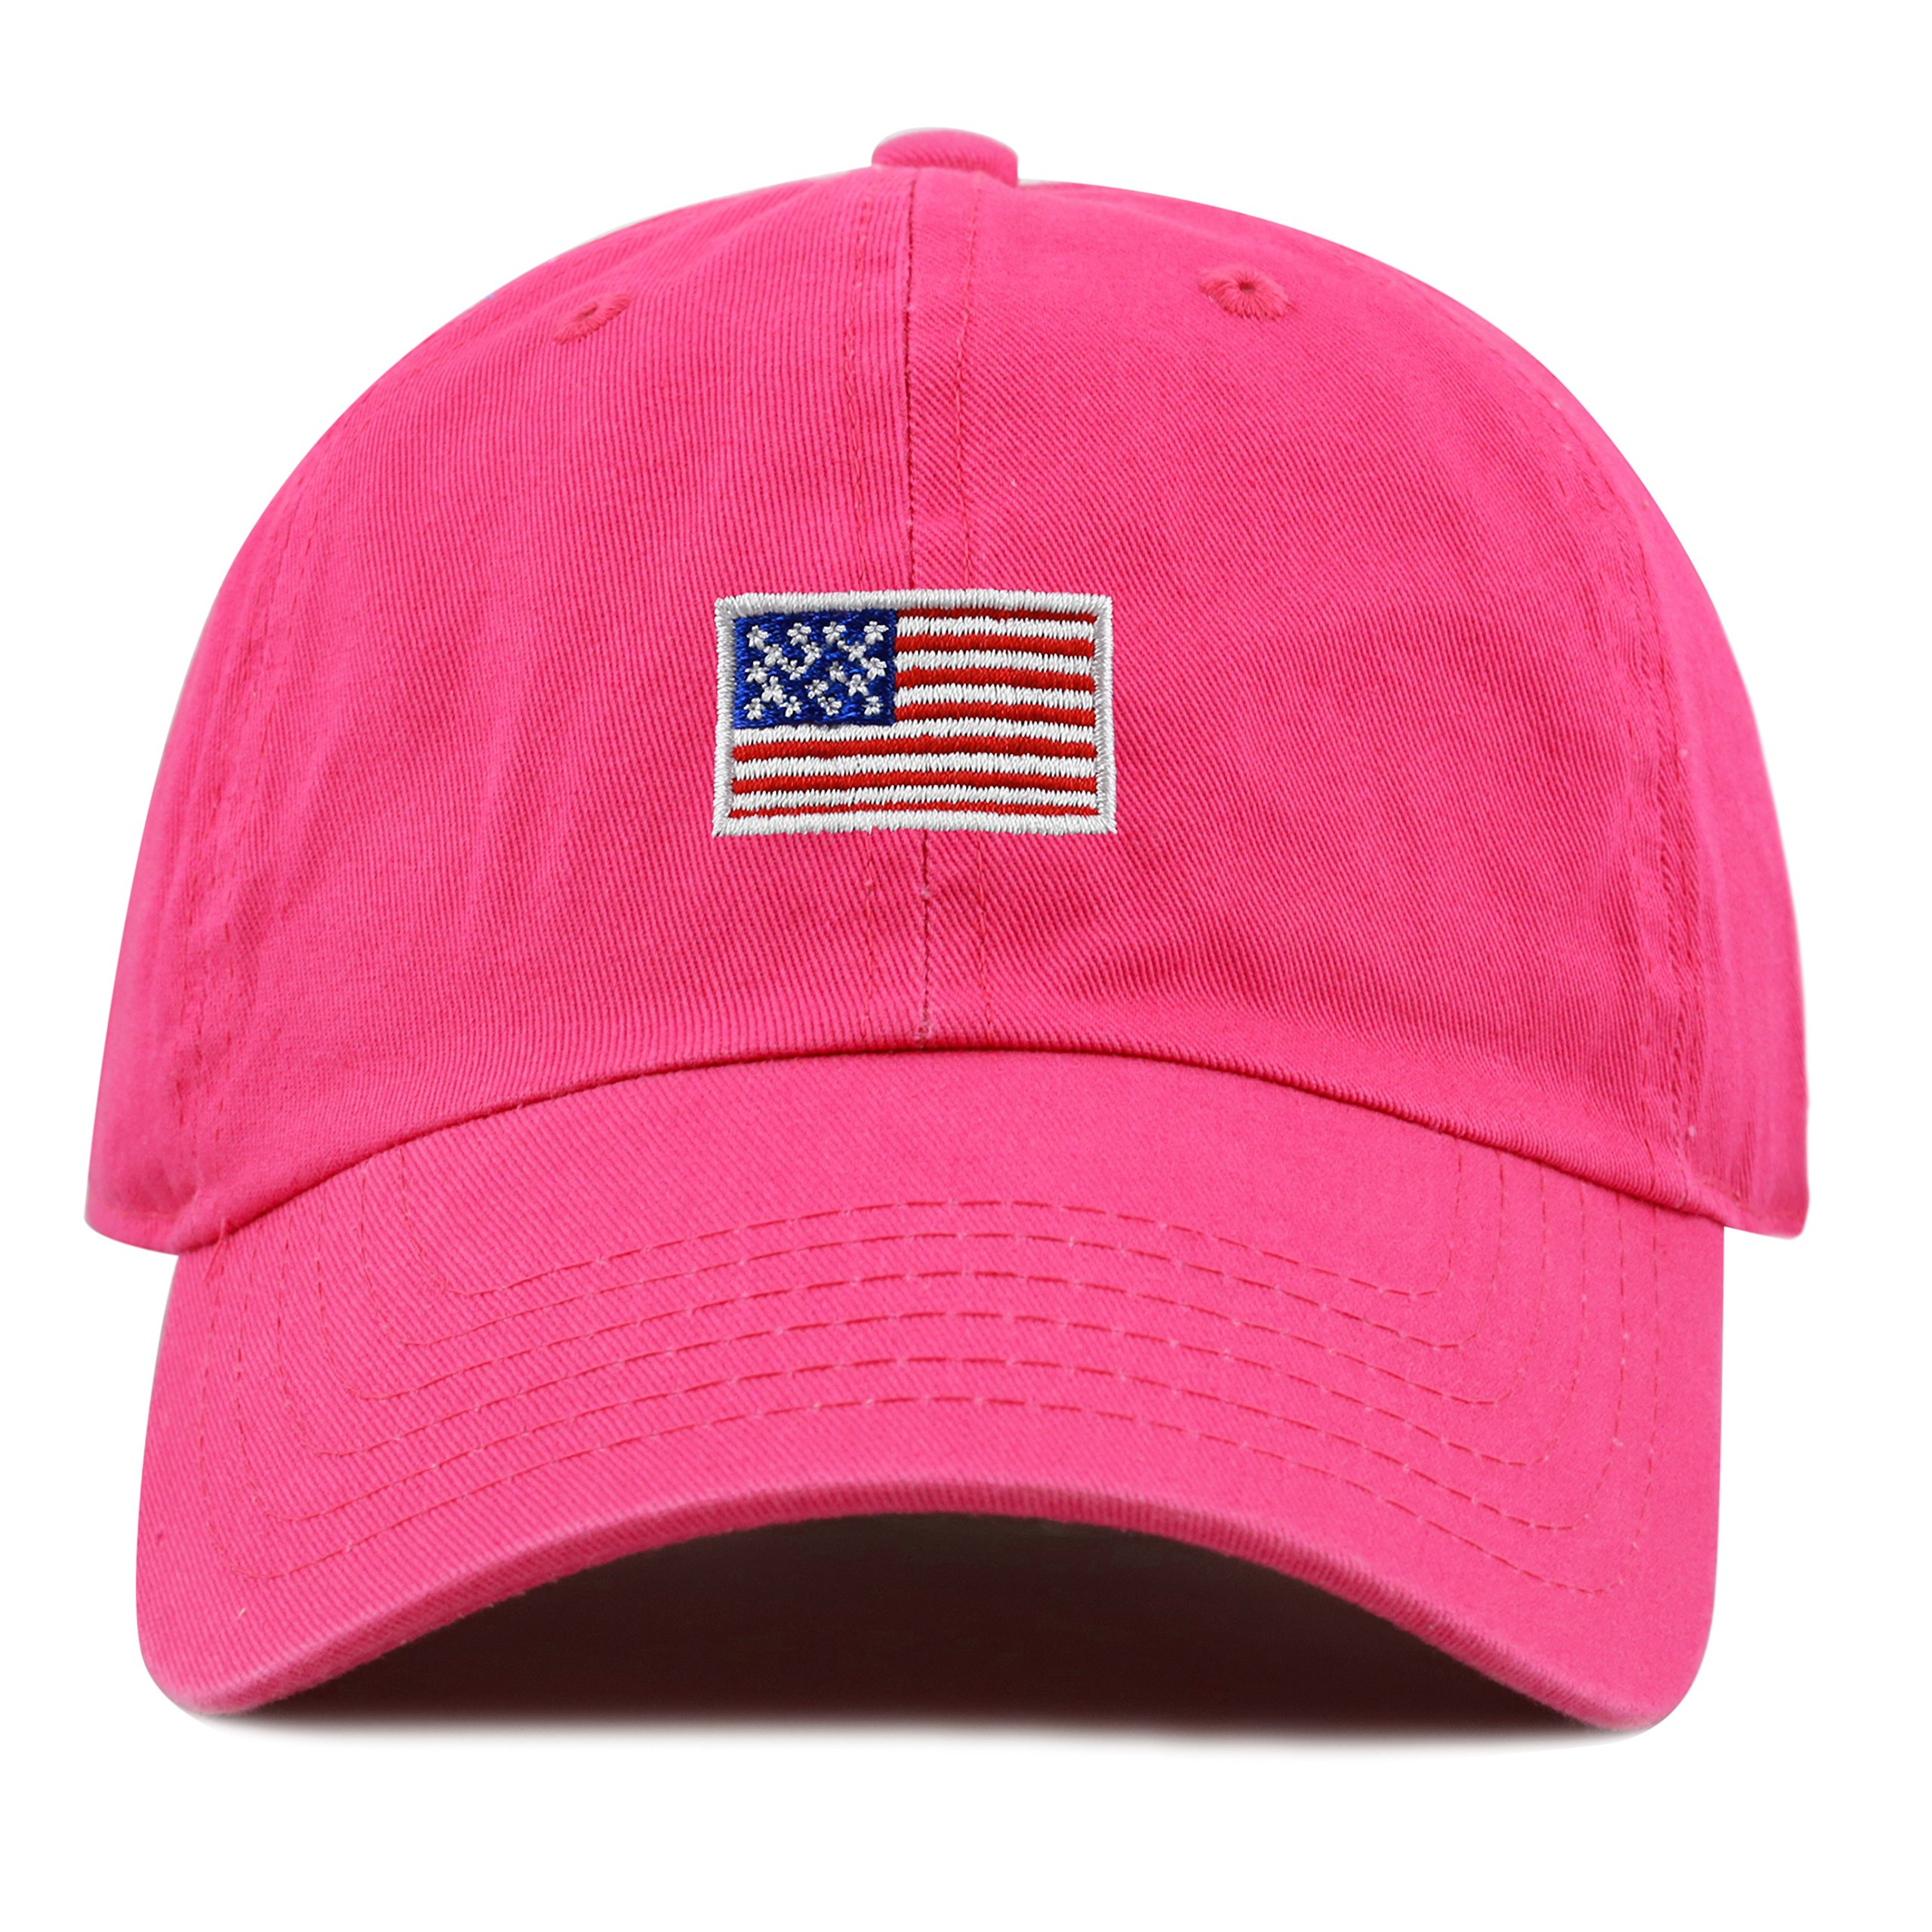 THE HAT DEPOT Kids American Flag Washed Low Profile Cotton and Denim Plain Baseball Cap Hat (2-5yrs, Hot Pink)